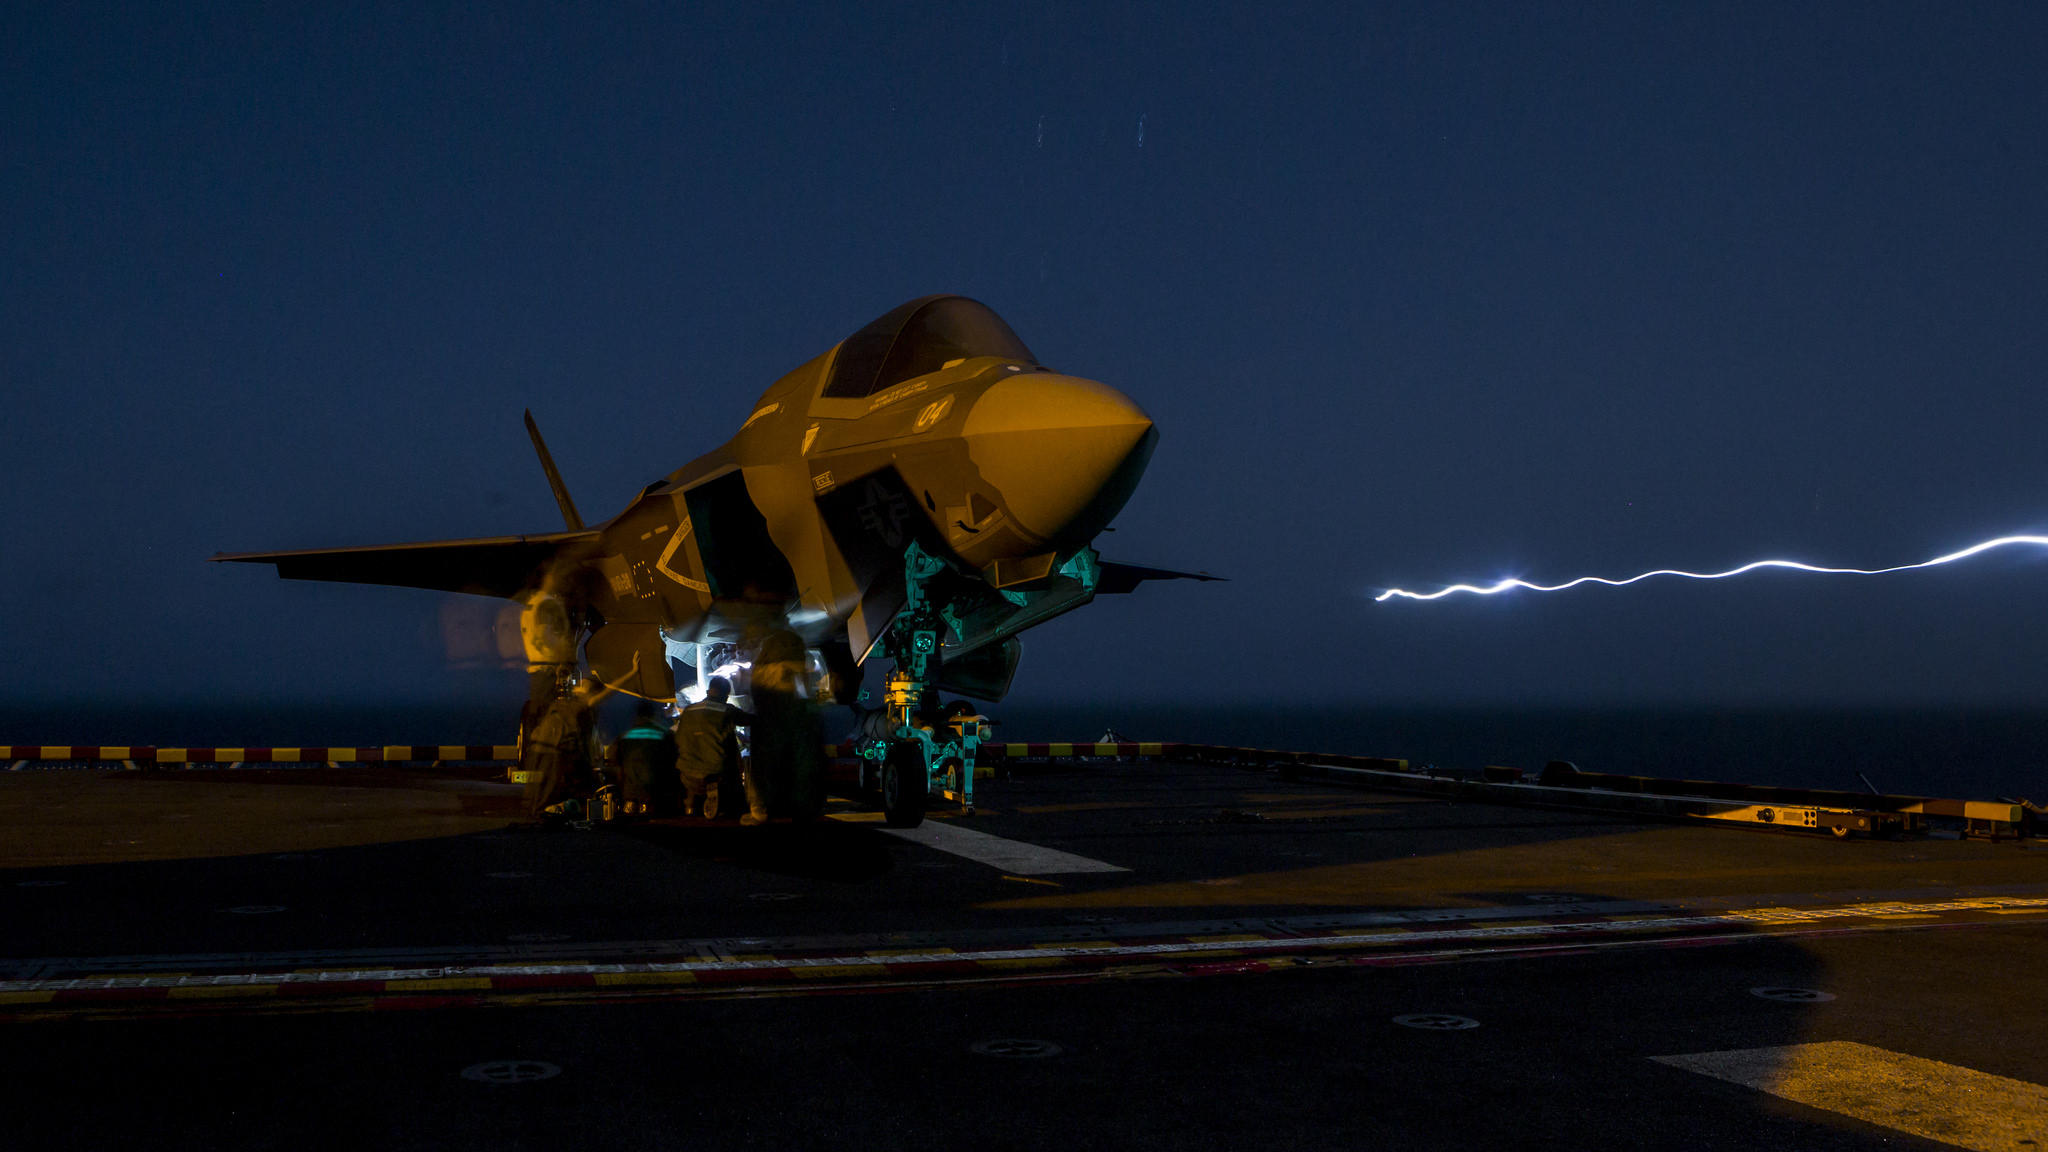 U.S. Marines with Marine Fighter Attack Squadron 211, 13th Marine Expeditionary Unit (MEU), load ordnance into an F-35B Lightning II aboard the Wasp-class amphibious assault ship USS Essex (LHD 2) on Sept. 27, 2018, in preparation for the F-35B's first combat strike. (Cpl. A. J. Van Fredenberg/Marine Corps)